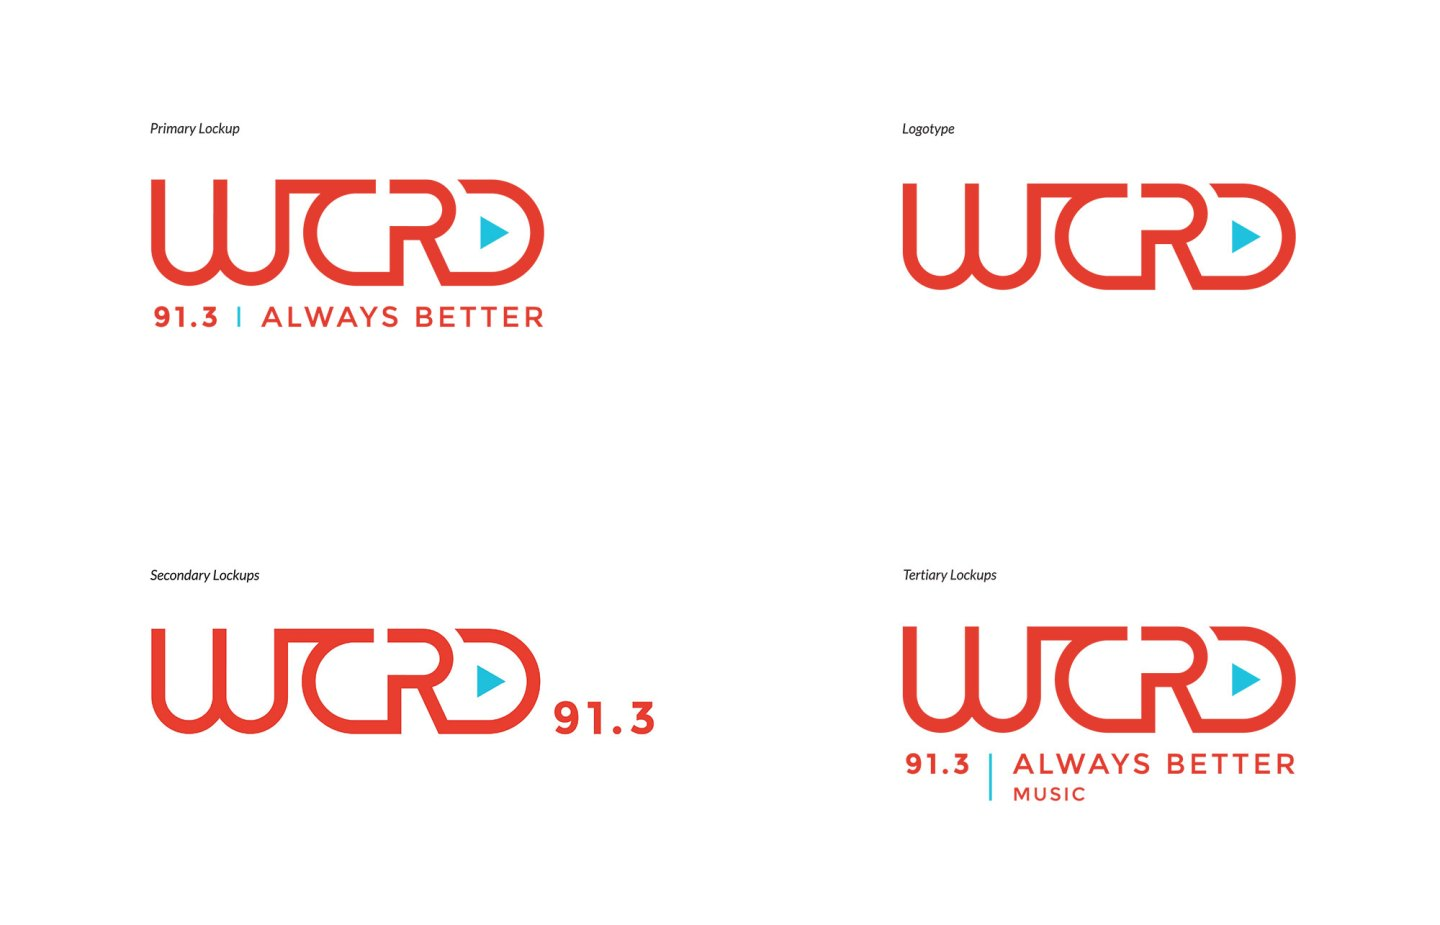 The WCRD identity system lockups